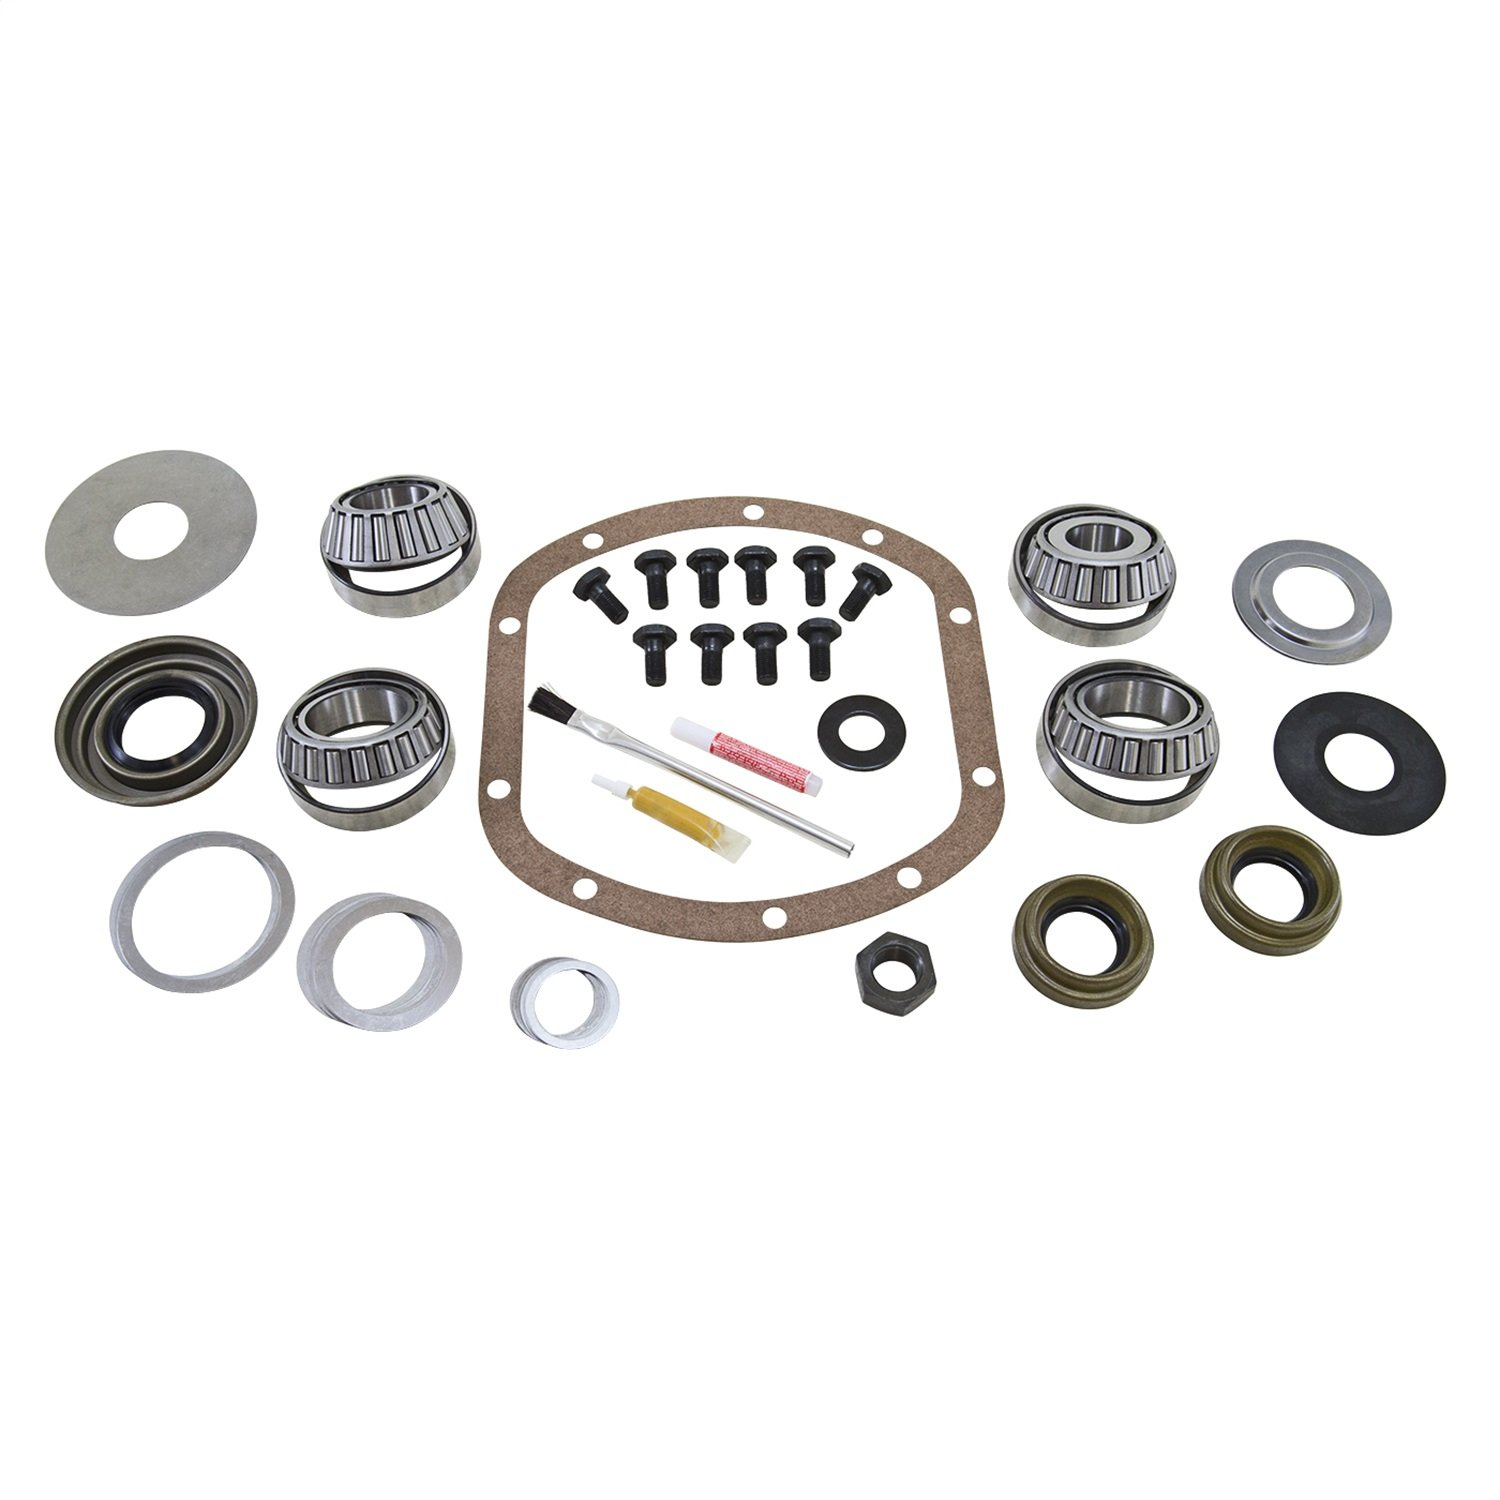 Yukon YKD30-F Front Master Overhaul Kit for Dana 30 Axle